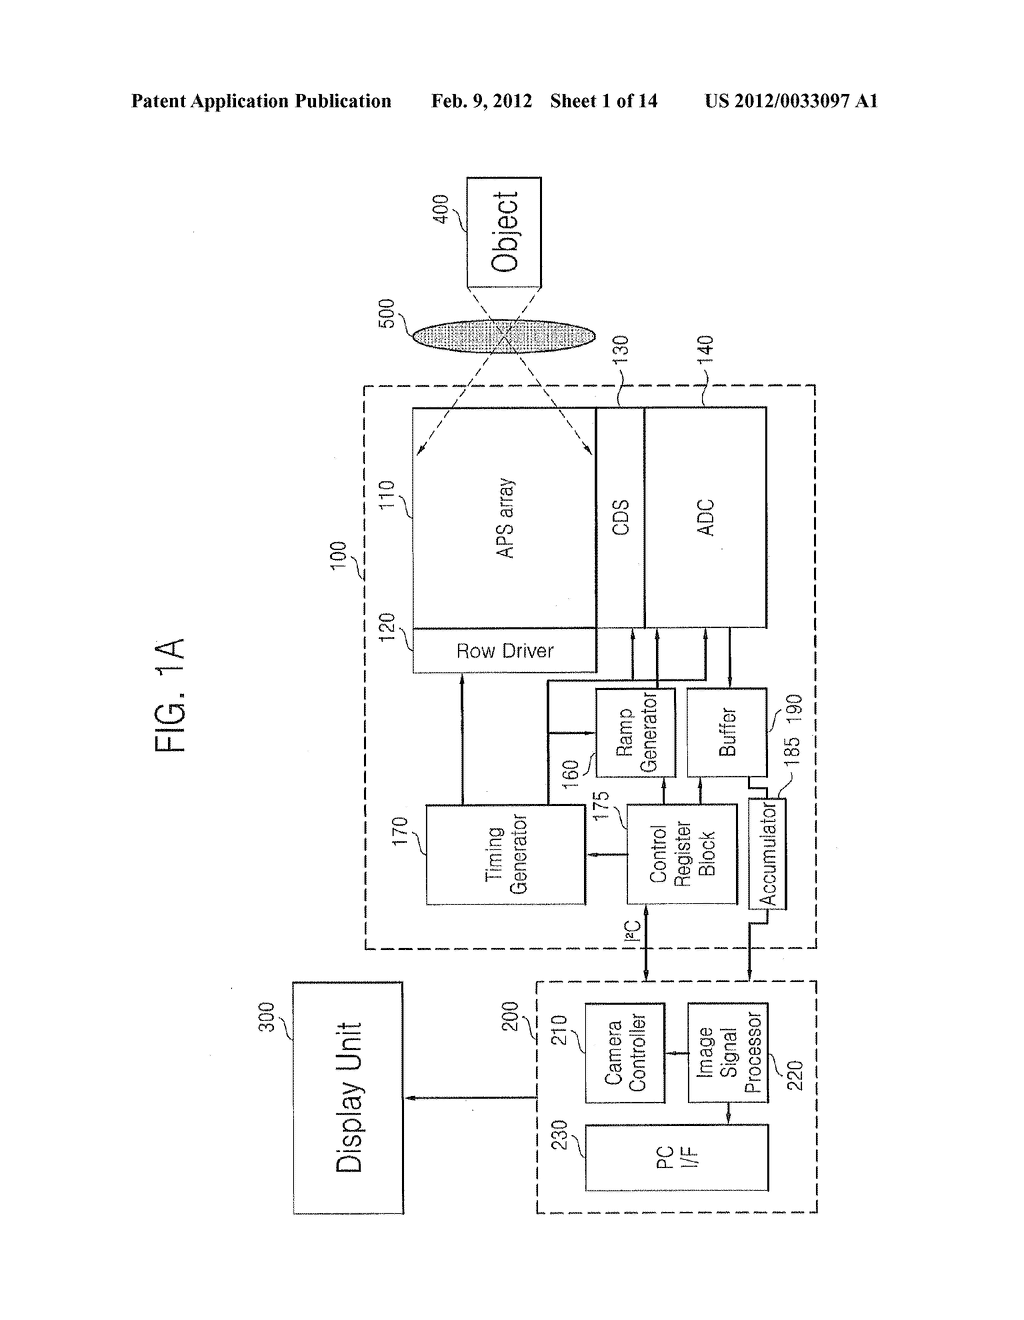 Counter Circuit Analog To Digital Converter Adc Including A Design Image Sensor And Or Systems Associated